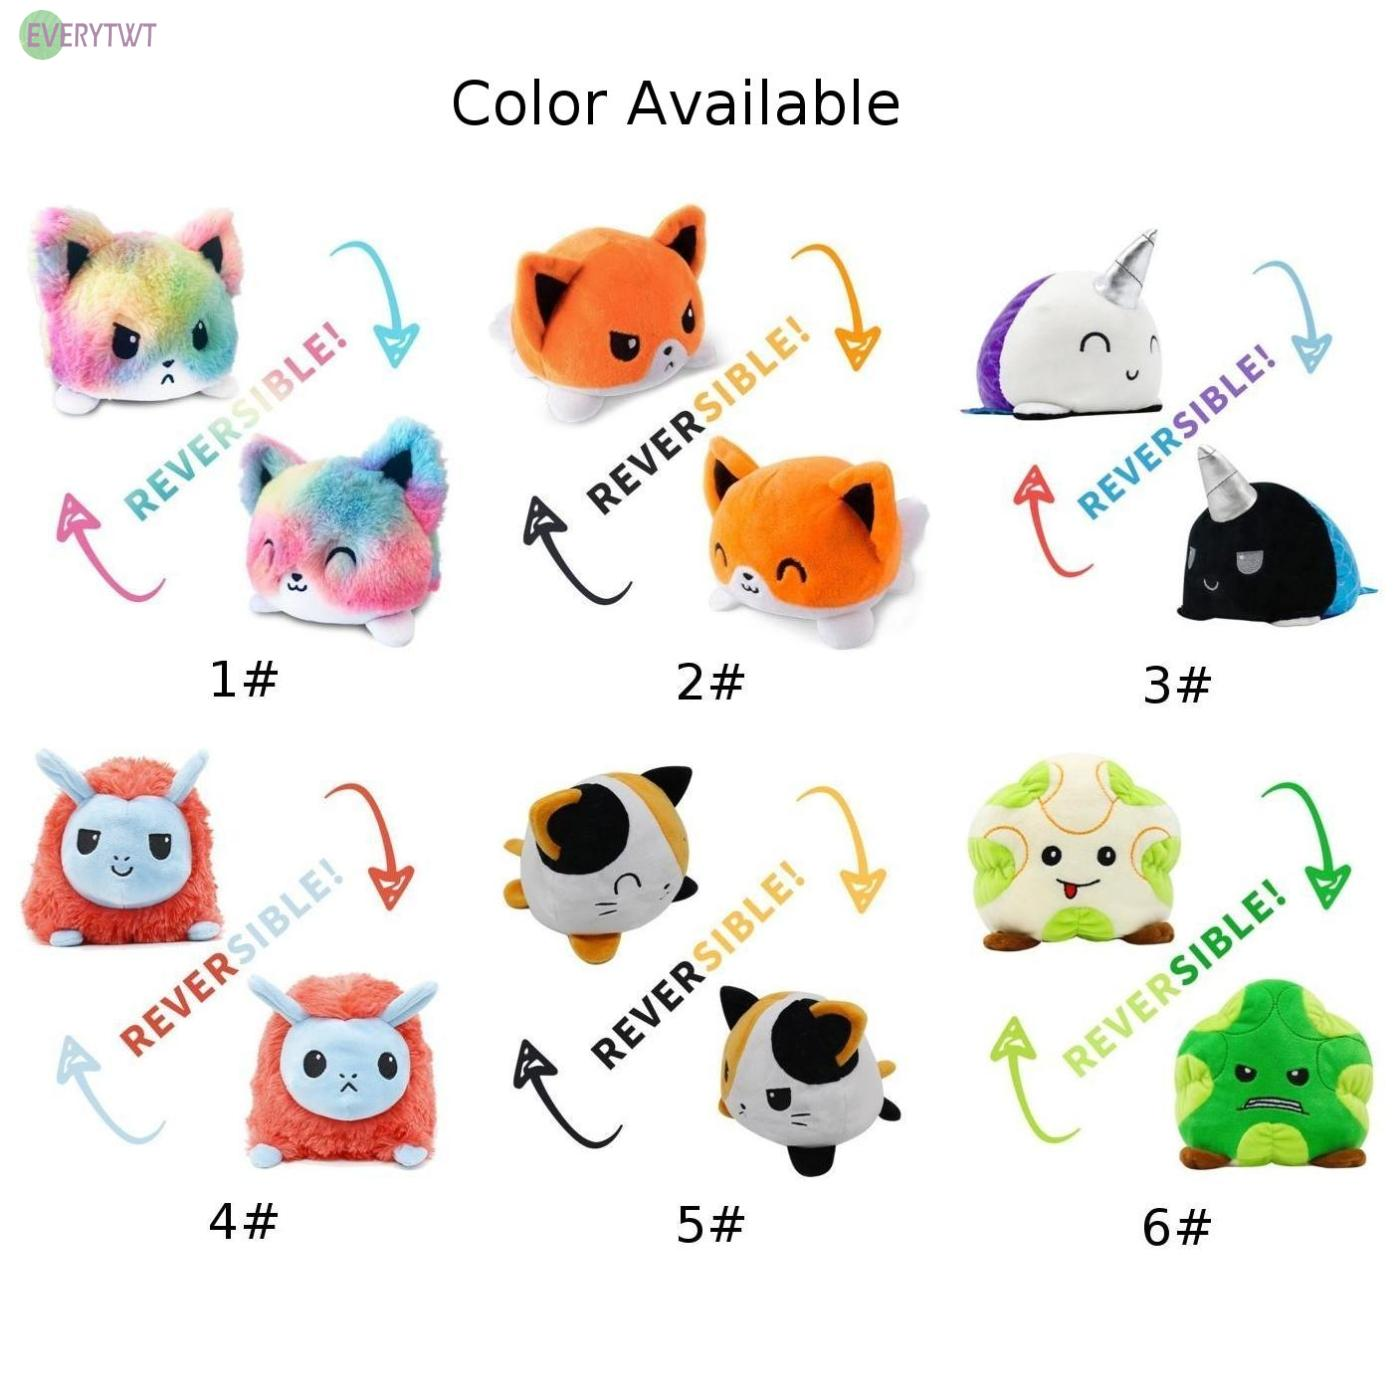 Reversible Cat Gato Plush doll Kids Plush Animal Cat Double-Sided Flip Doll Toy Cute and soft plush doll with realistic expression